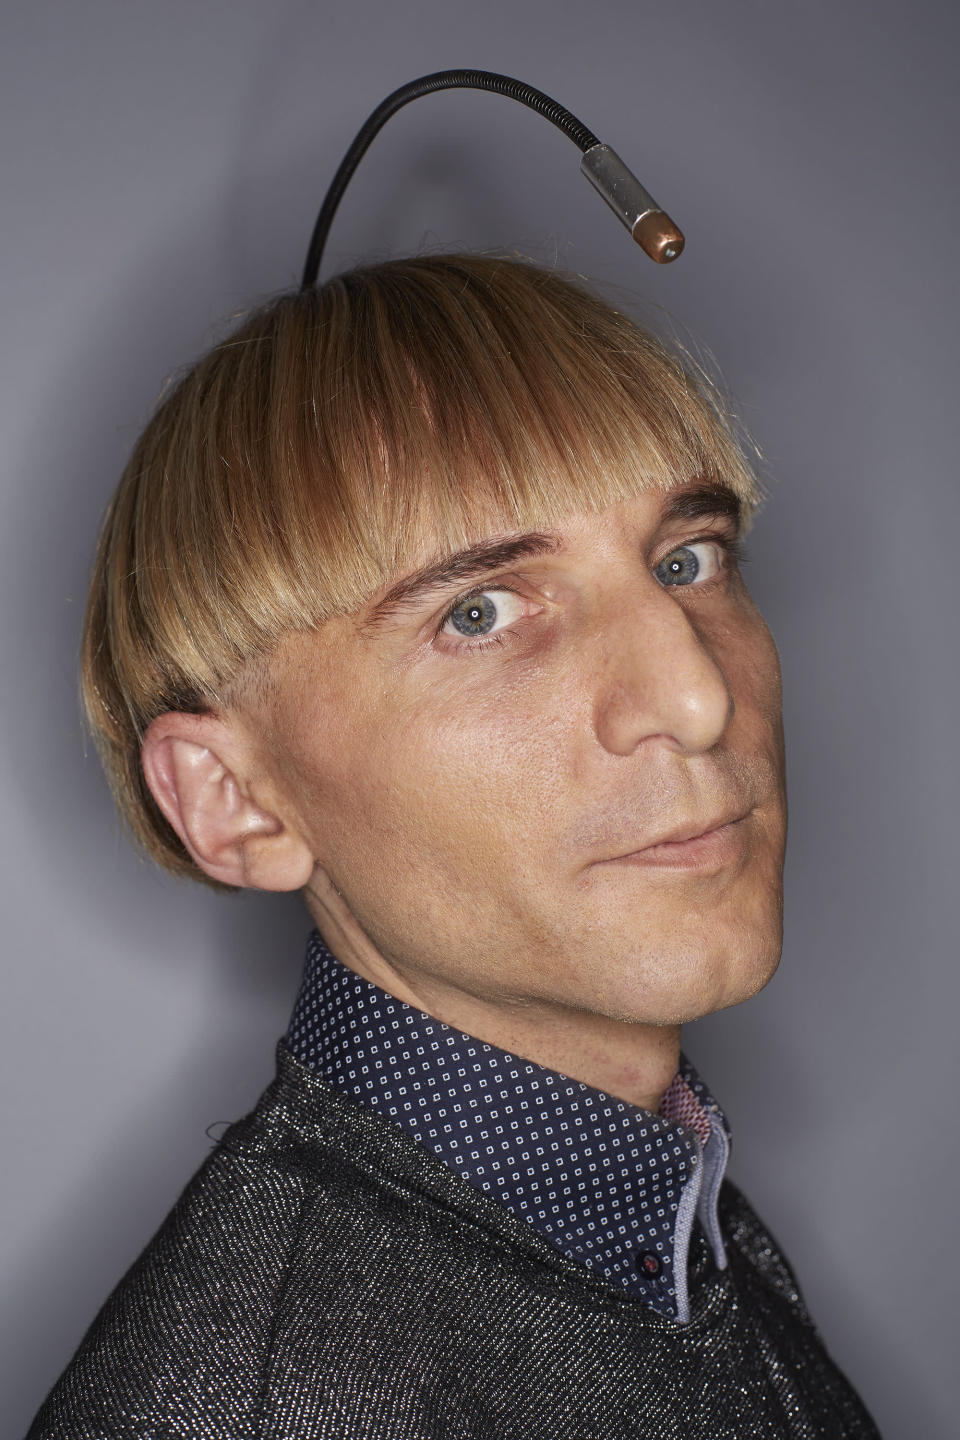 <p>We might not have flying cars yet, but in 2004, Neil Harbisson became the first person to get an antenna implanted into the back of his skull. (PA) </p>